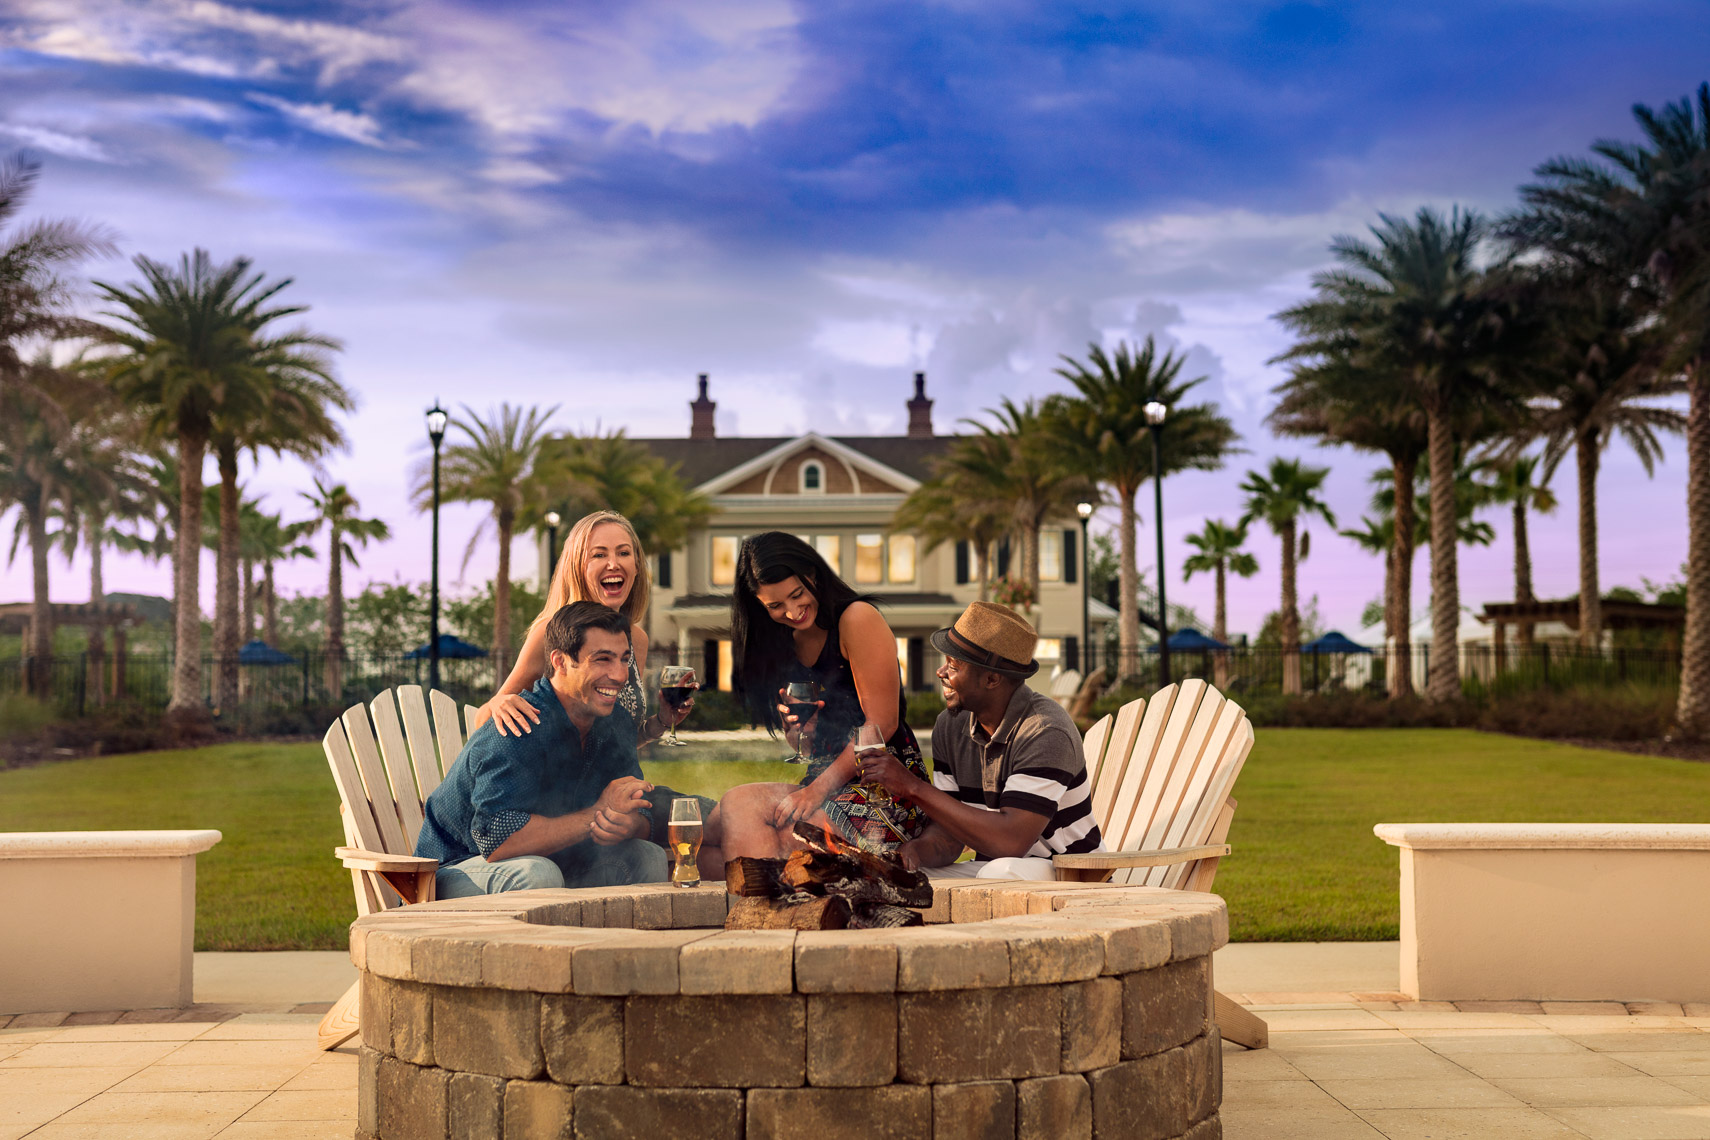 Two couples enjoy drinks together by the fire pit